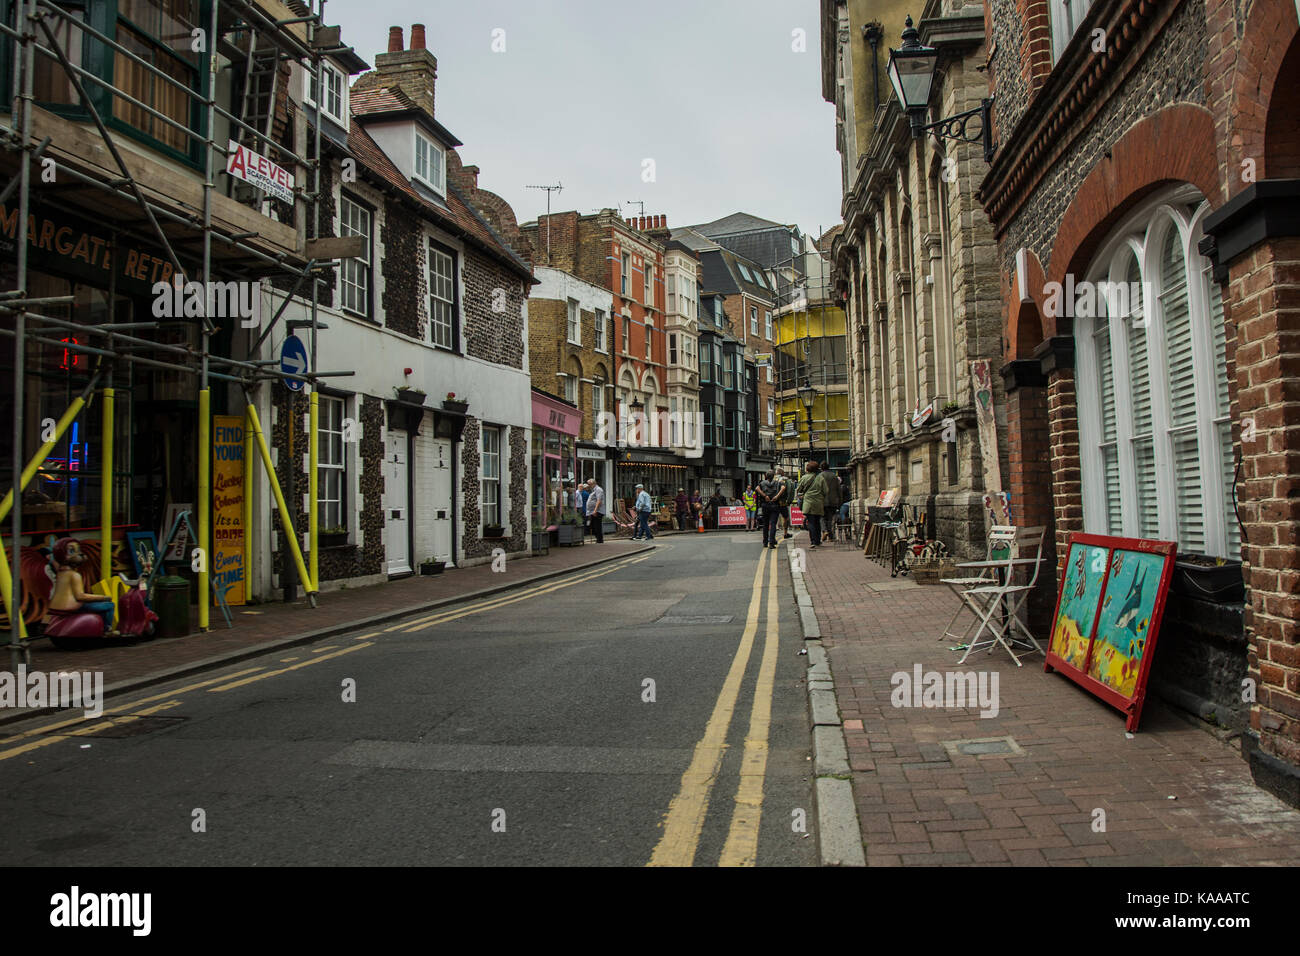 King Sreet leading to Margate`s seafront and Harbour - Stock Image